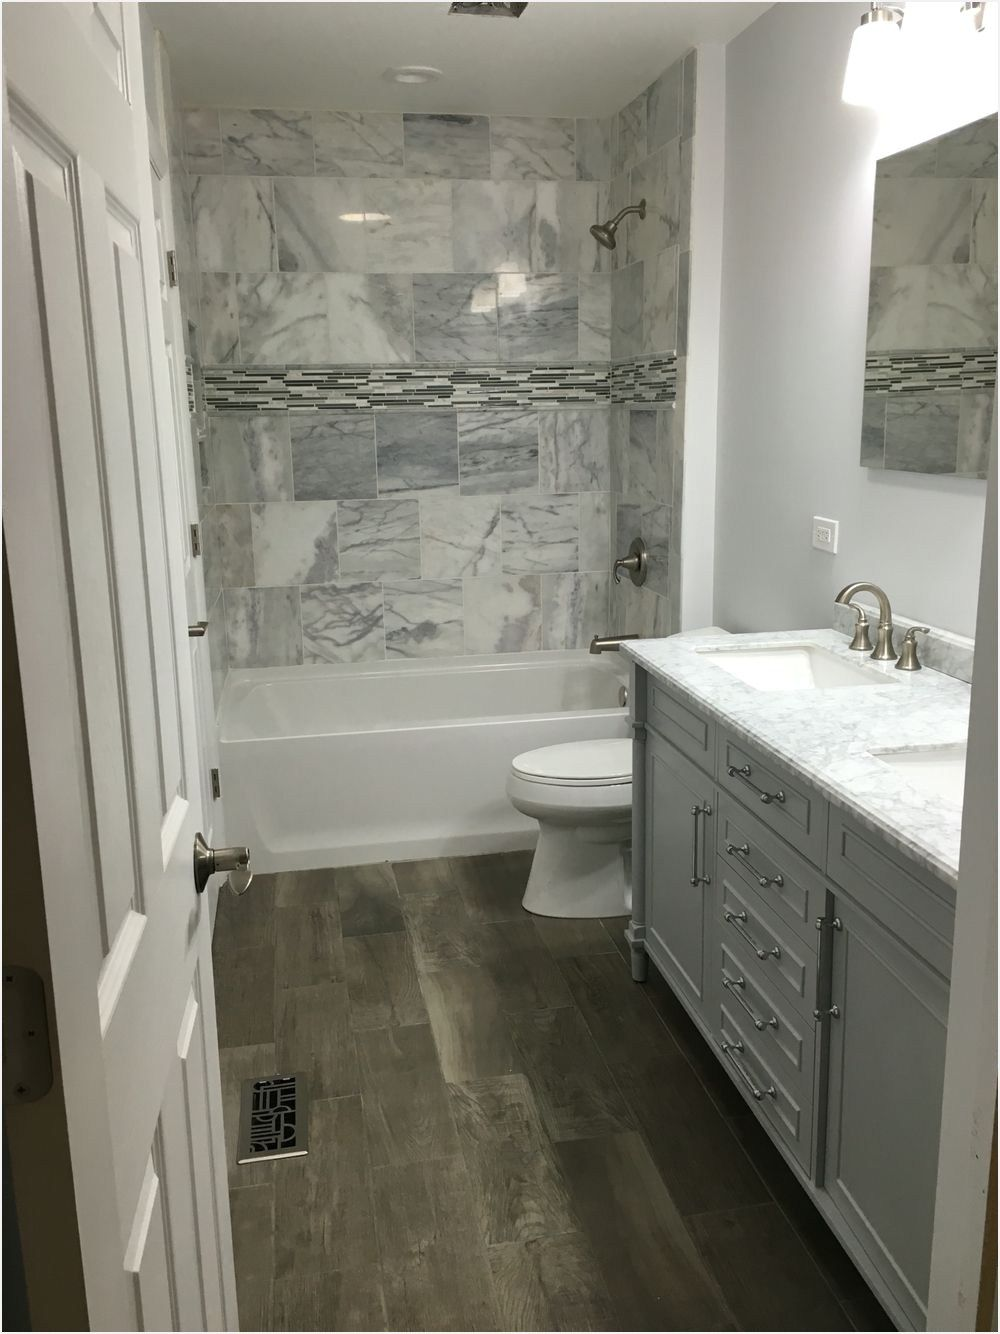 41 Awesome Small Full Bathroom Remodel Ideas Homenthusiastic Full Bathroom Remodel Small Full Bathroom Bathrooms Remodel